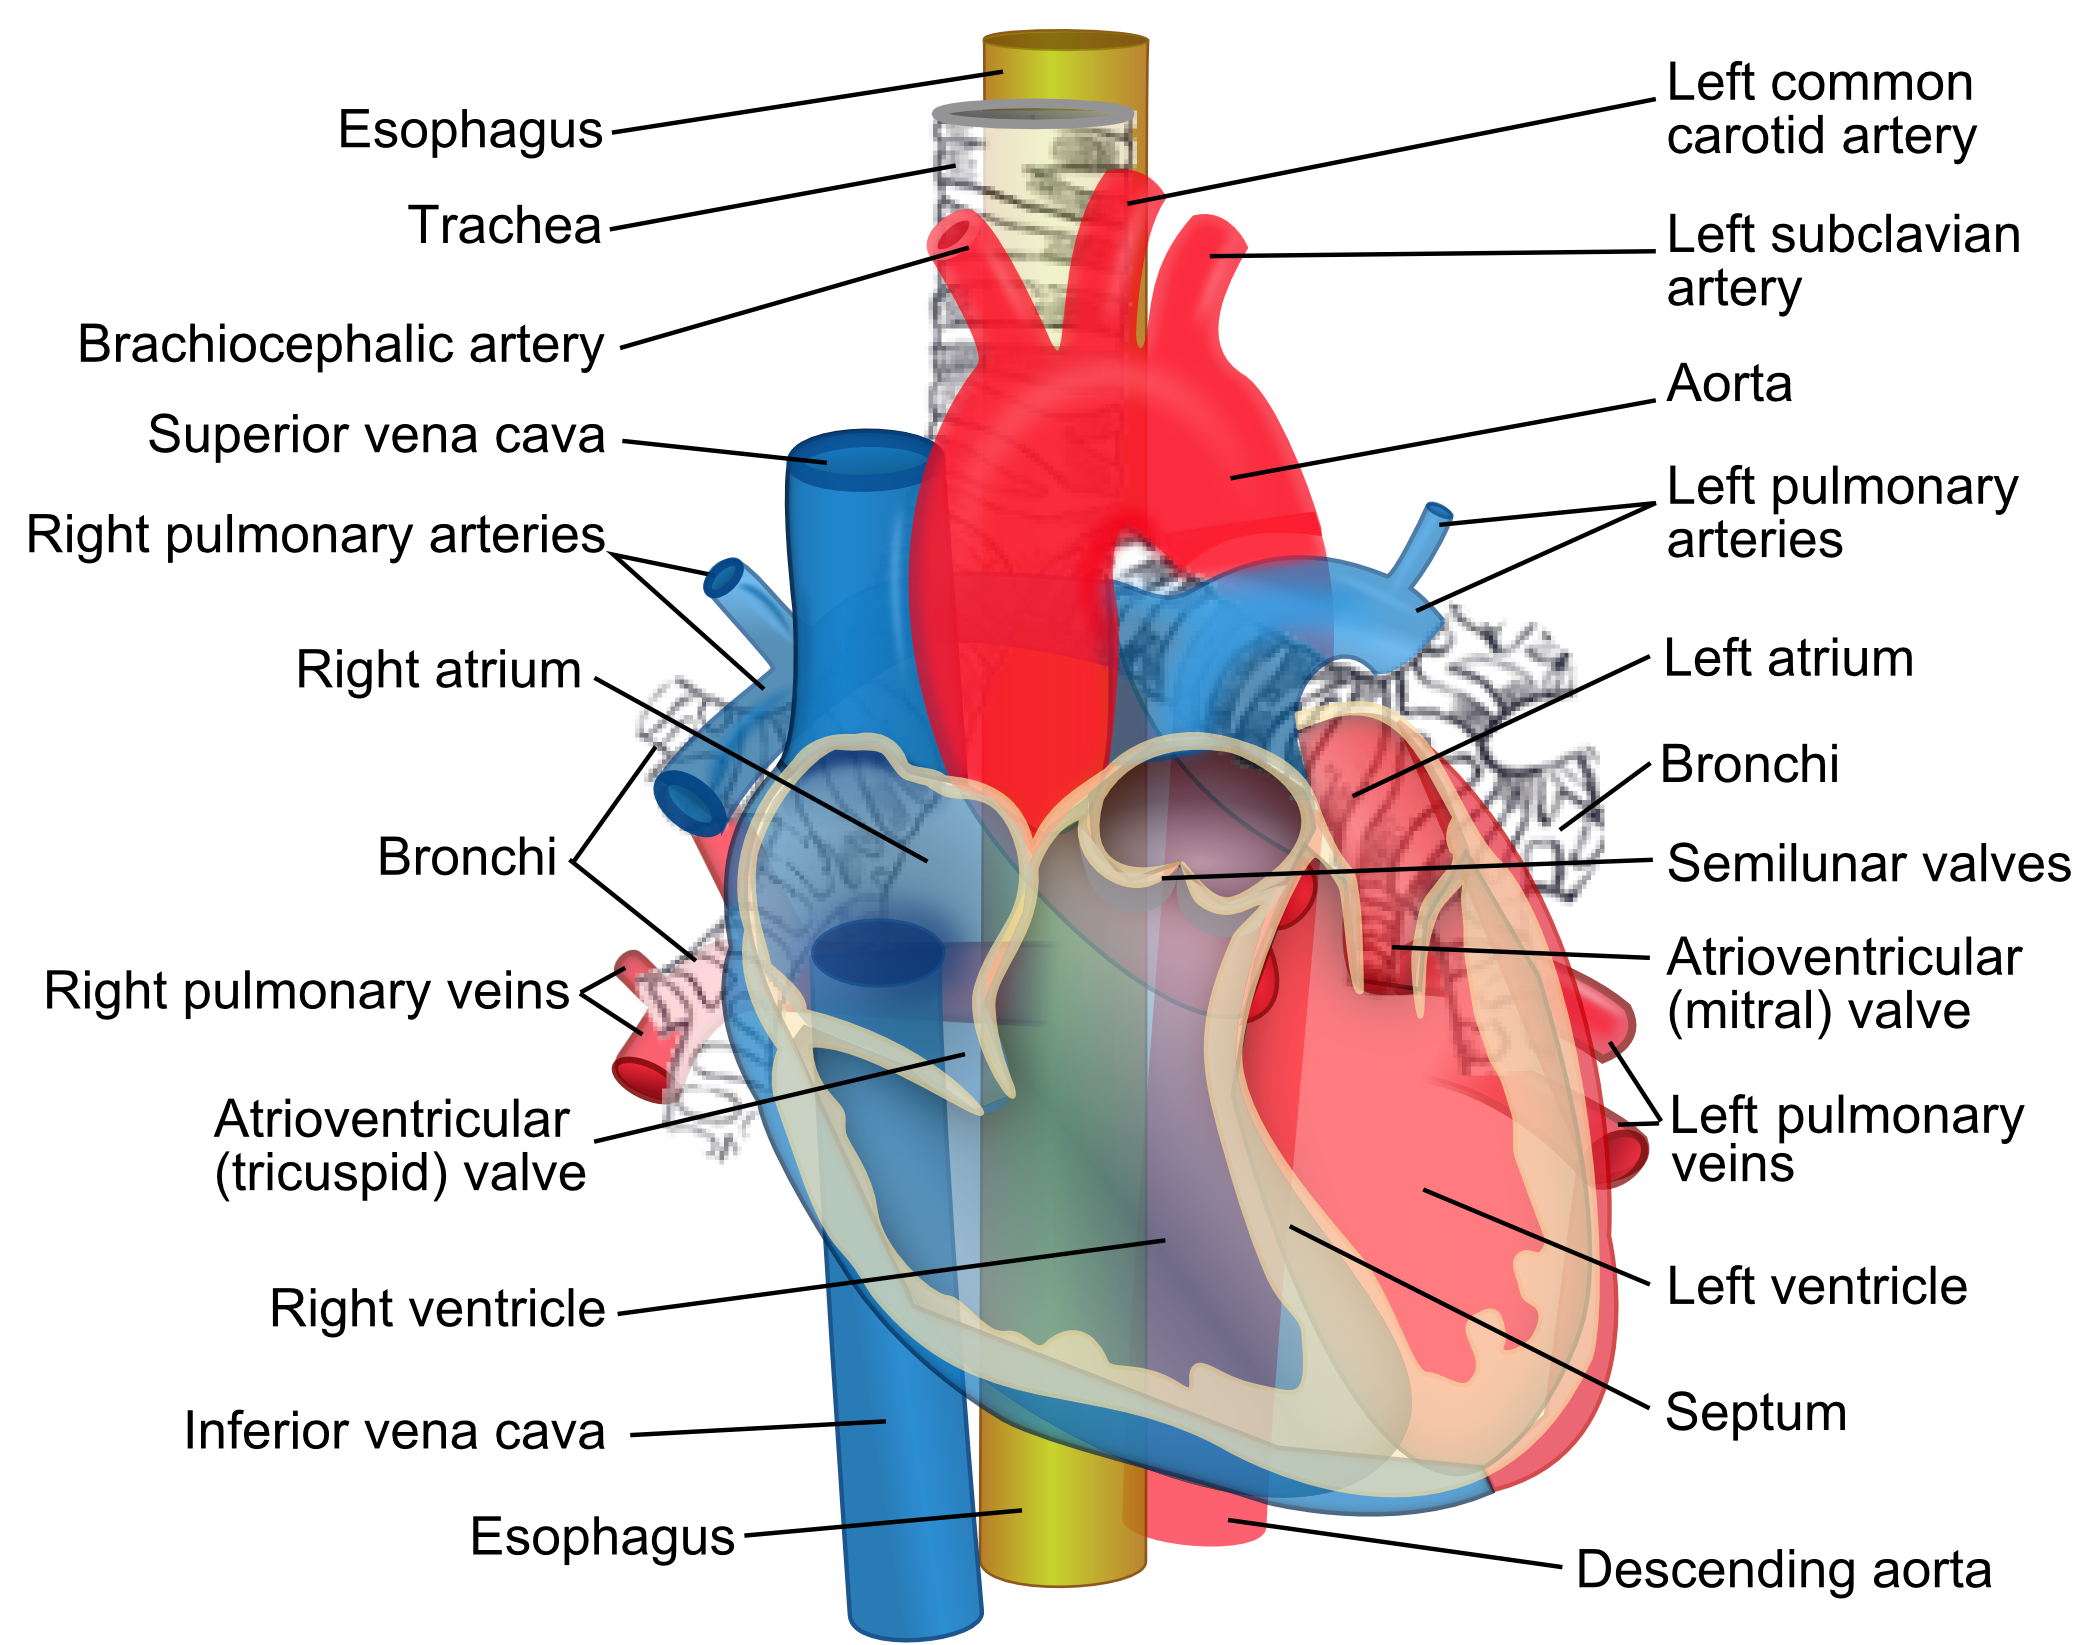 Description Relations of the aorta, trachea, esophagus and other heart ...